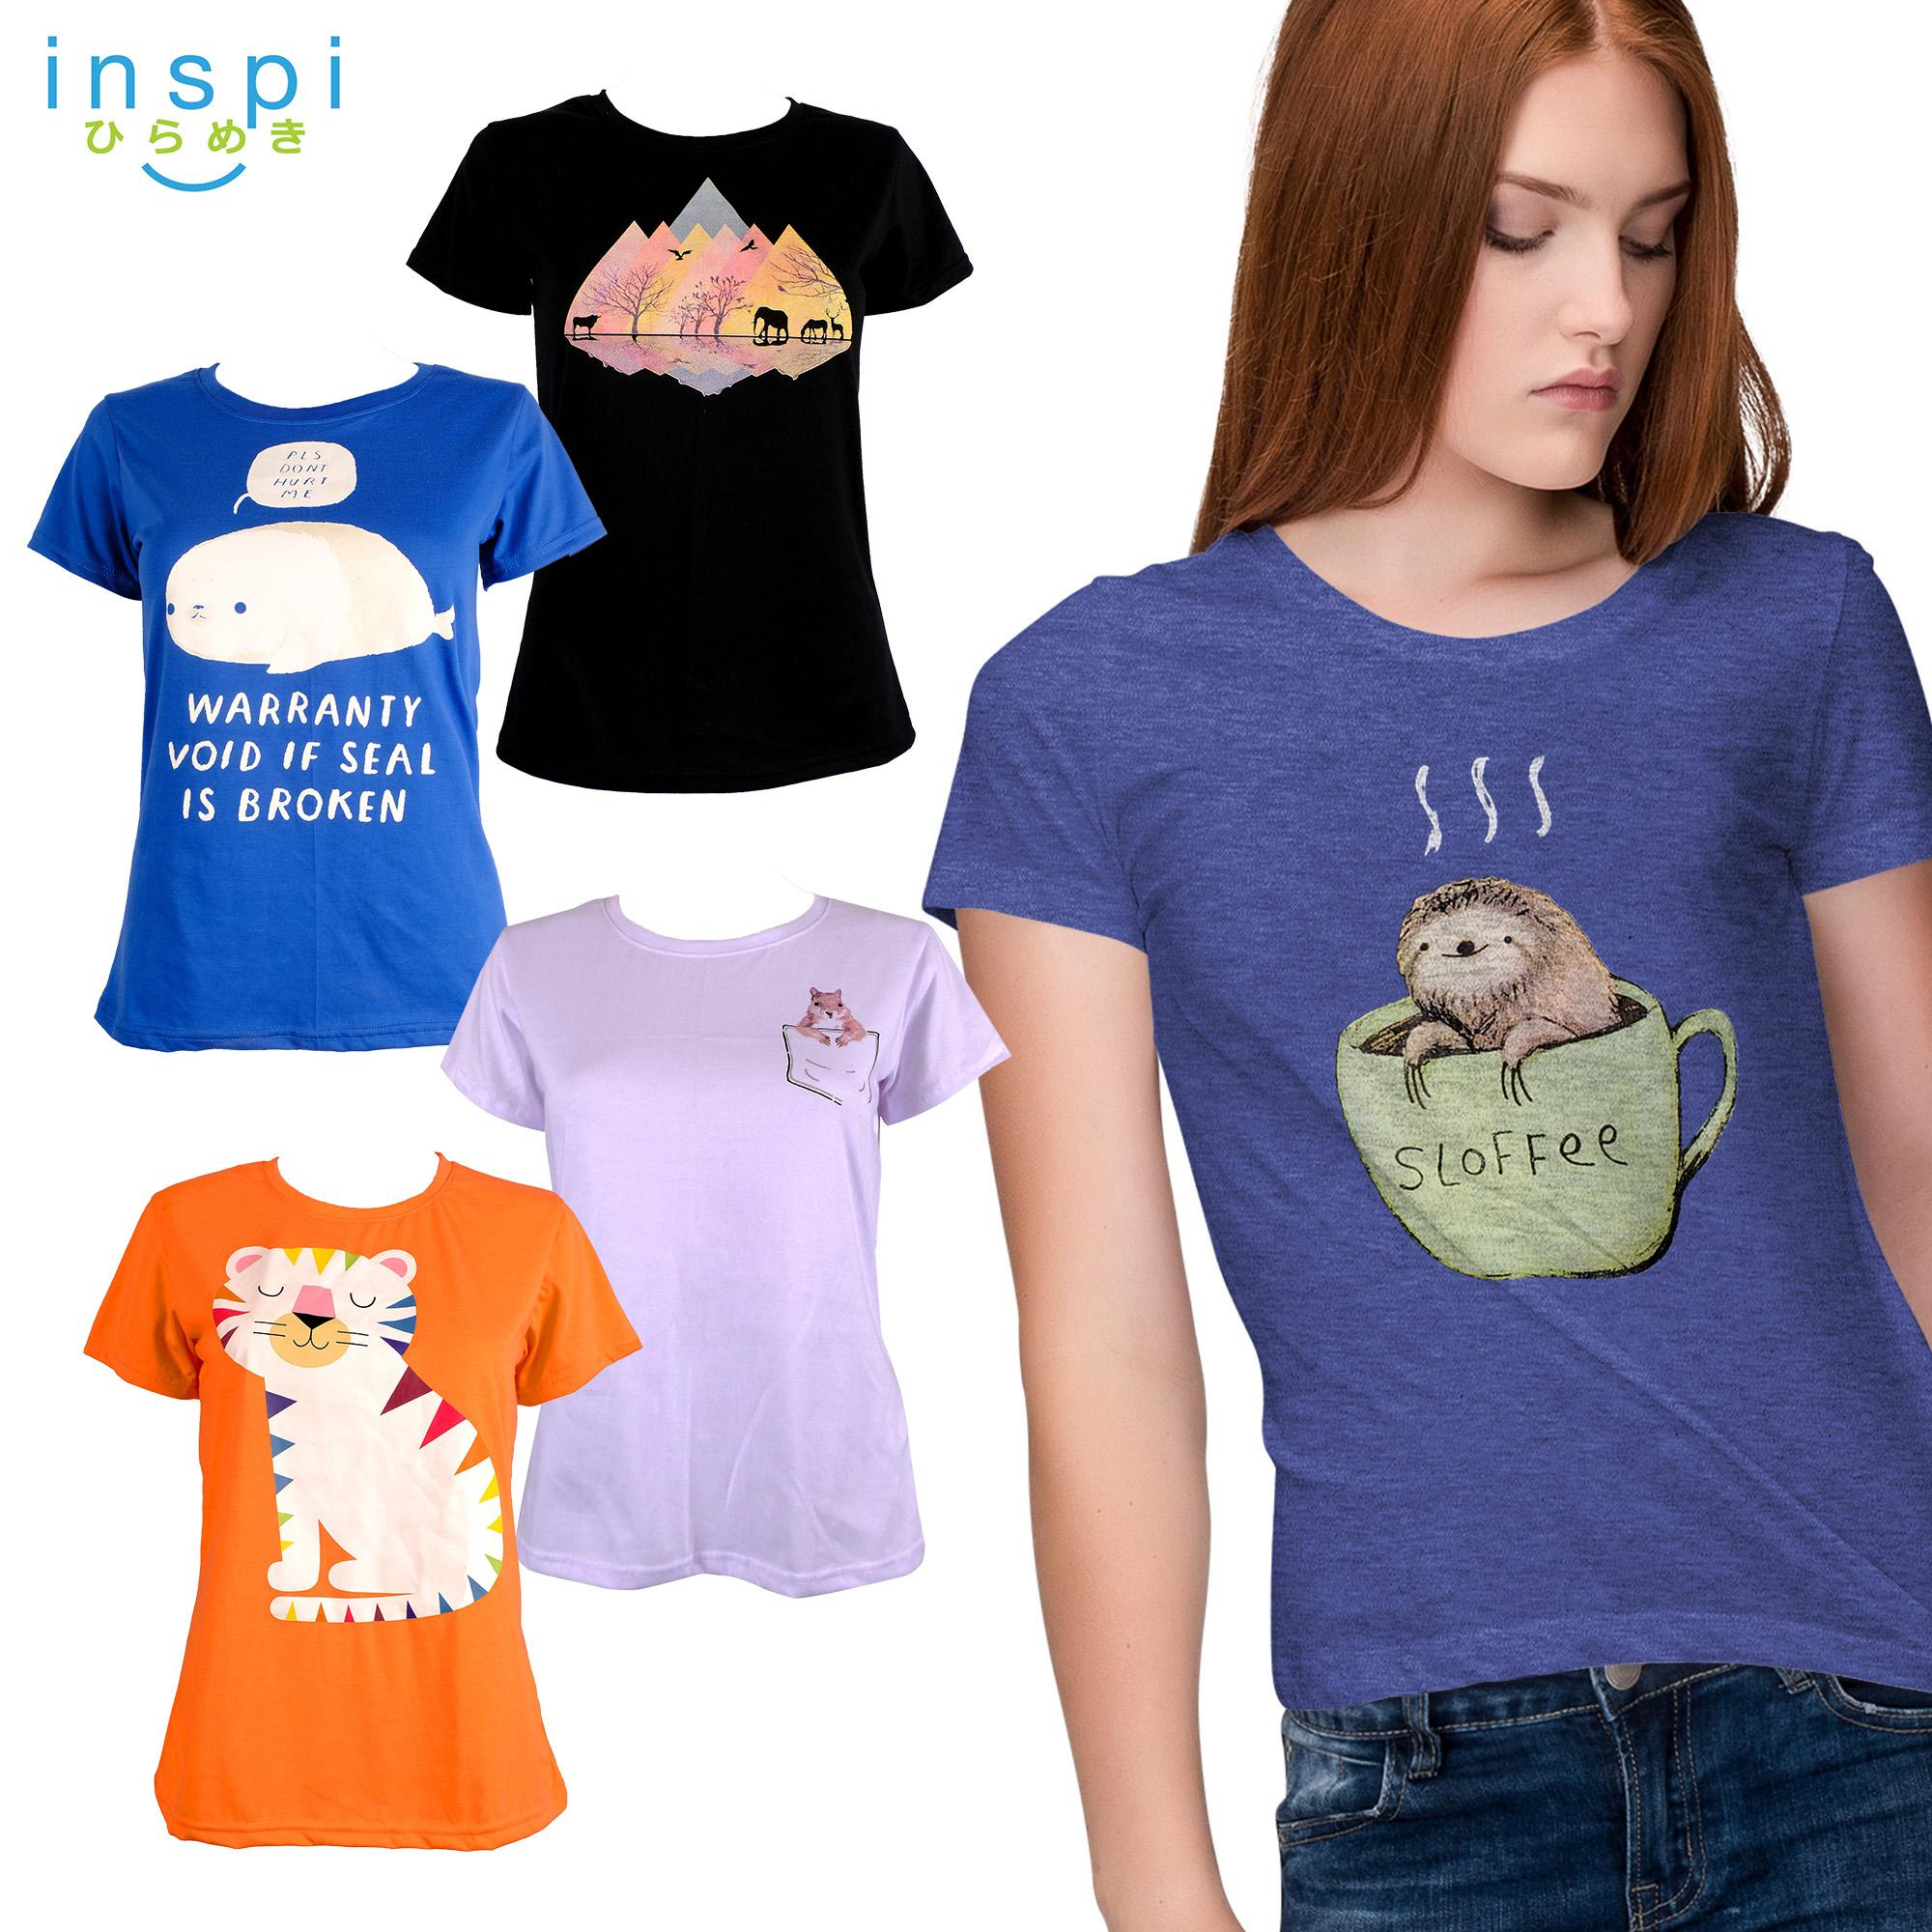 a6c3d0a2a INSPI Tees Ladies Pet Collection tshirt printed graphic tee Ladies t shirt  shirts women tshirts for